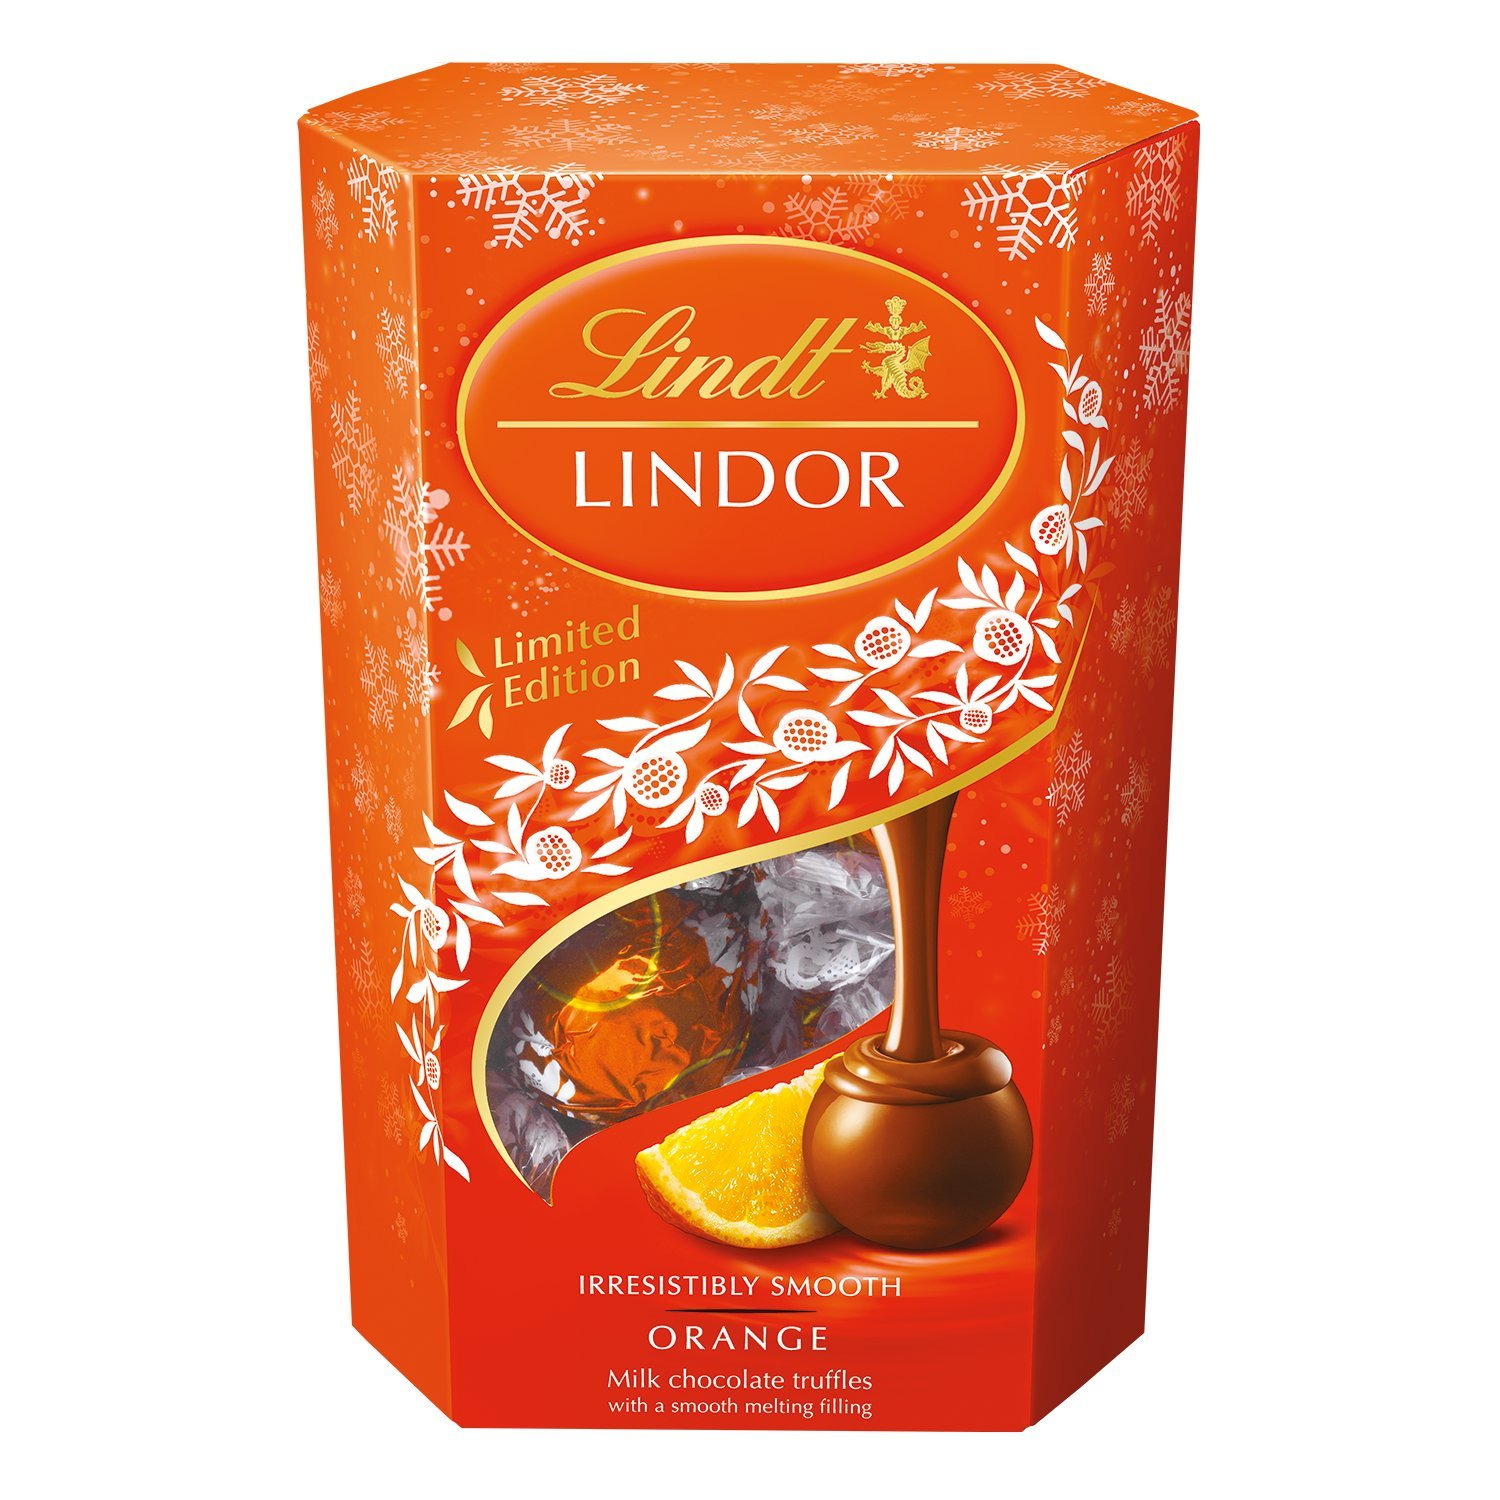 Lindt Lindor Orange Milk Chocolate Truffles 200G: Amazon.com ...